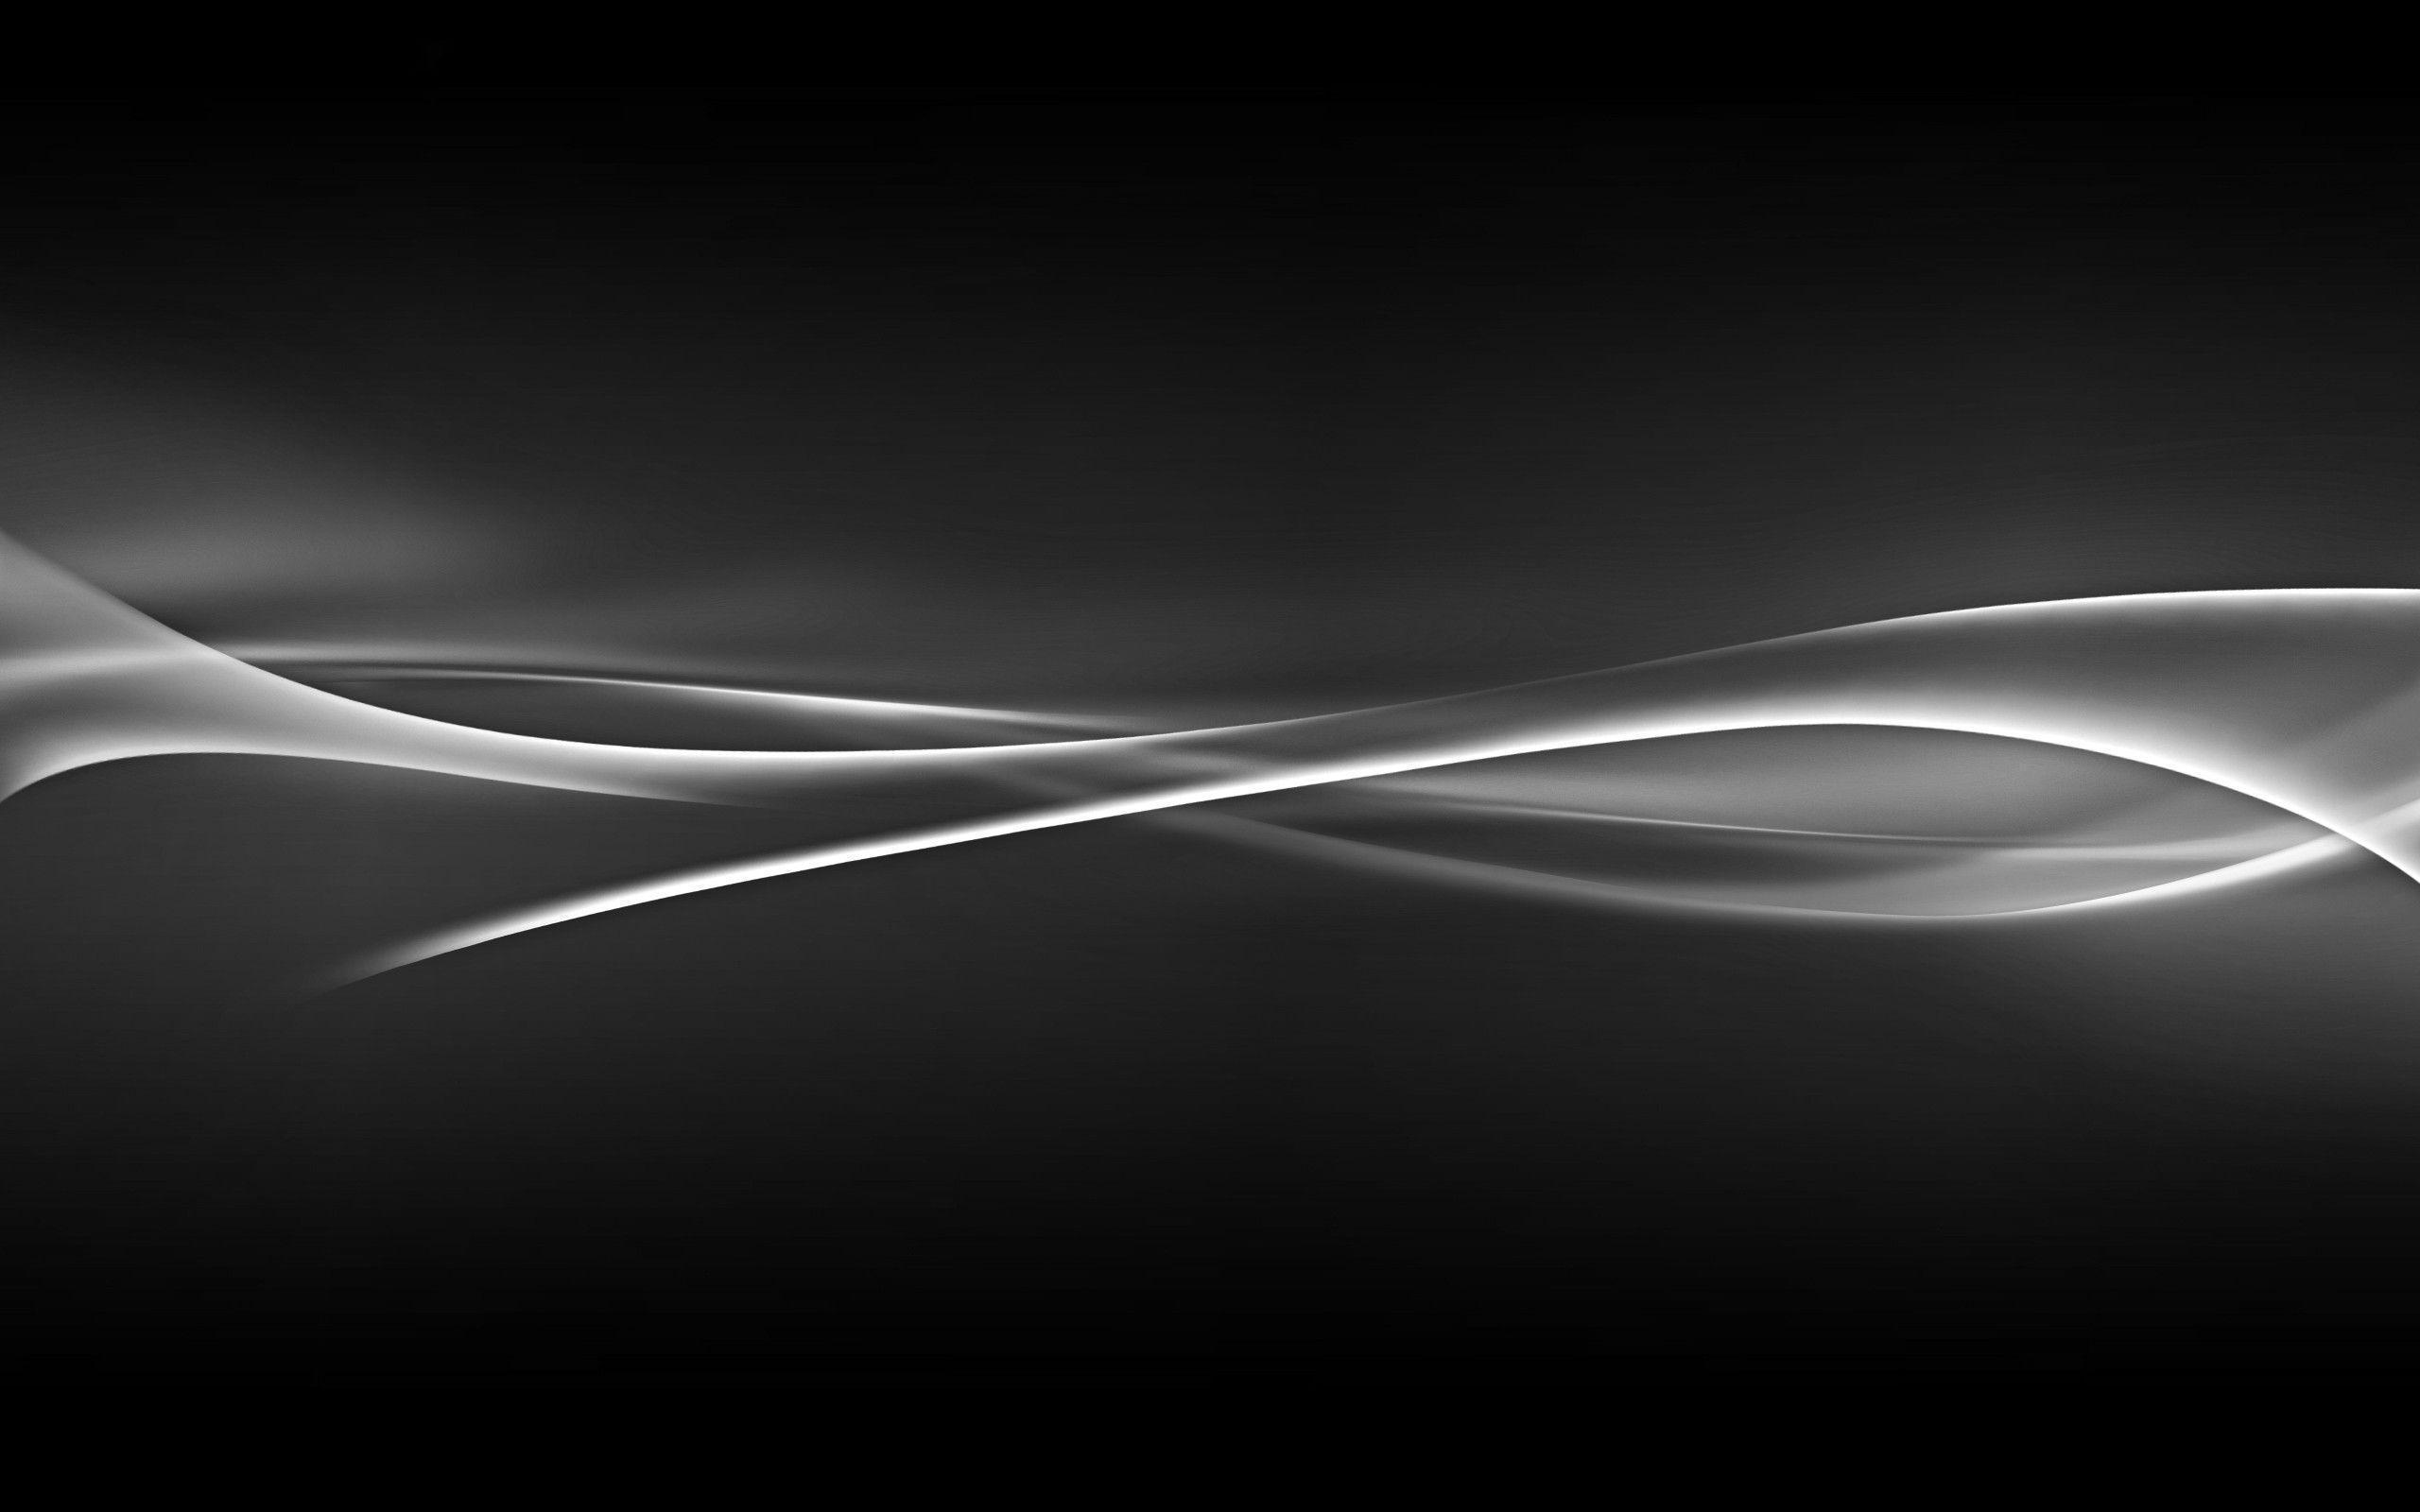 White Abstract Background Hd Wallpaper 21 HD Wallpapers